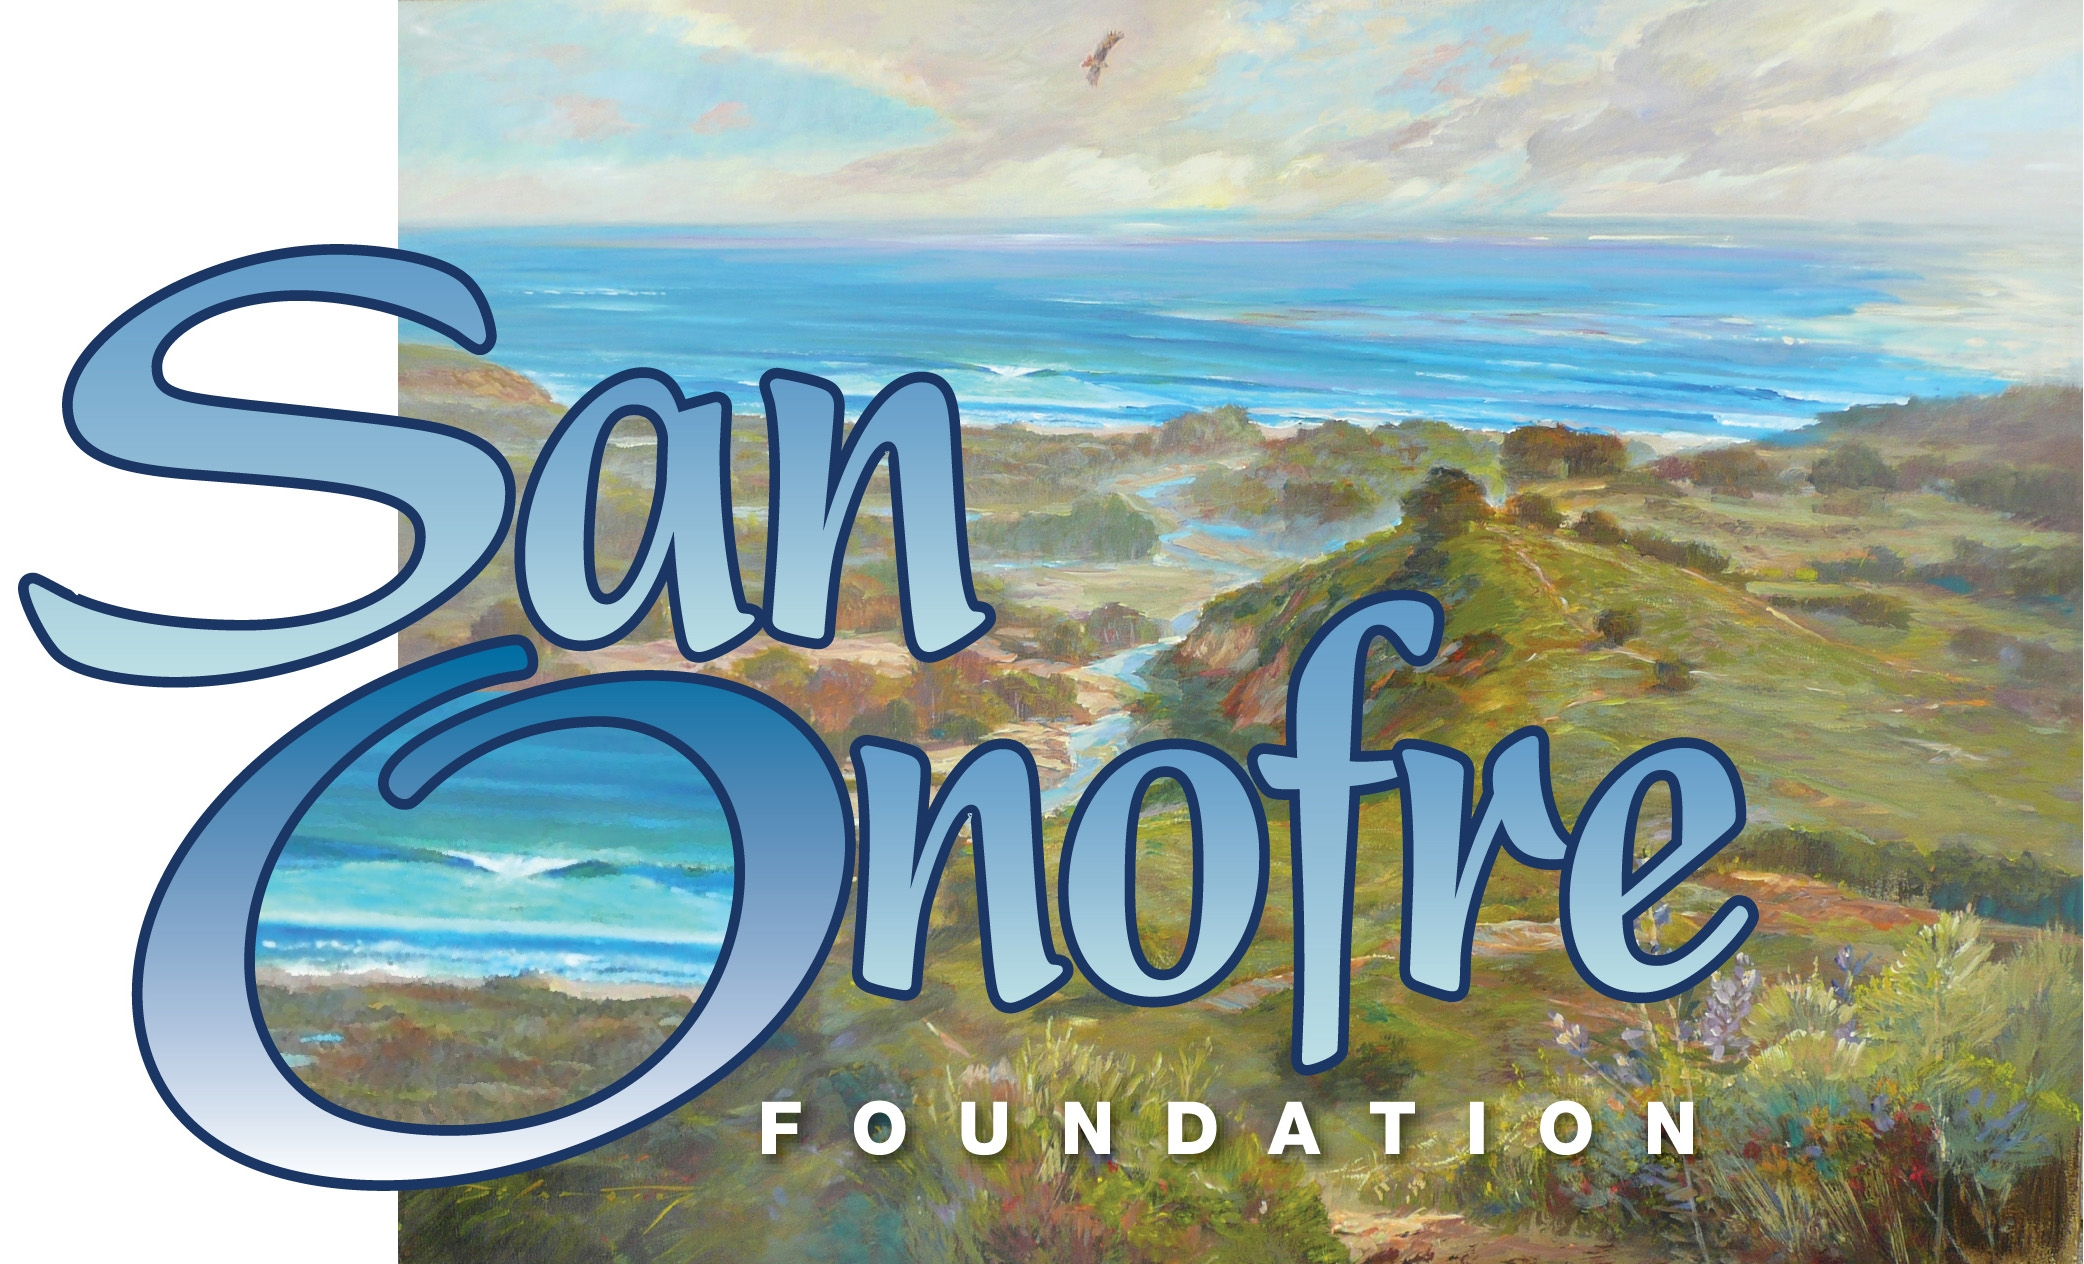 Coastal bluffs and ocean beach with words San Onofre Foundation